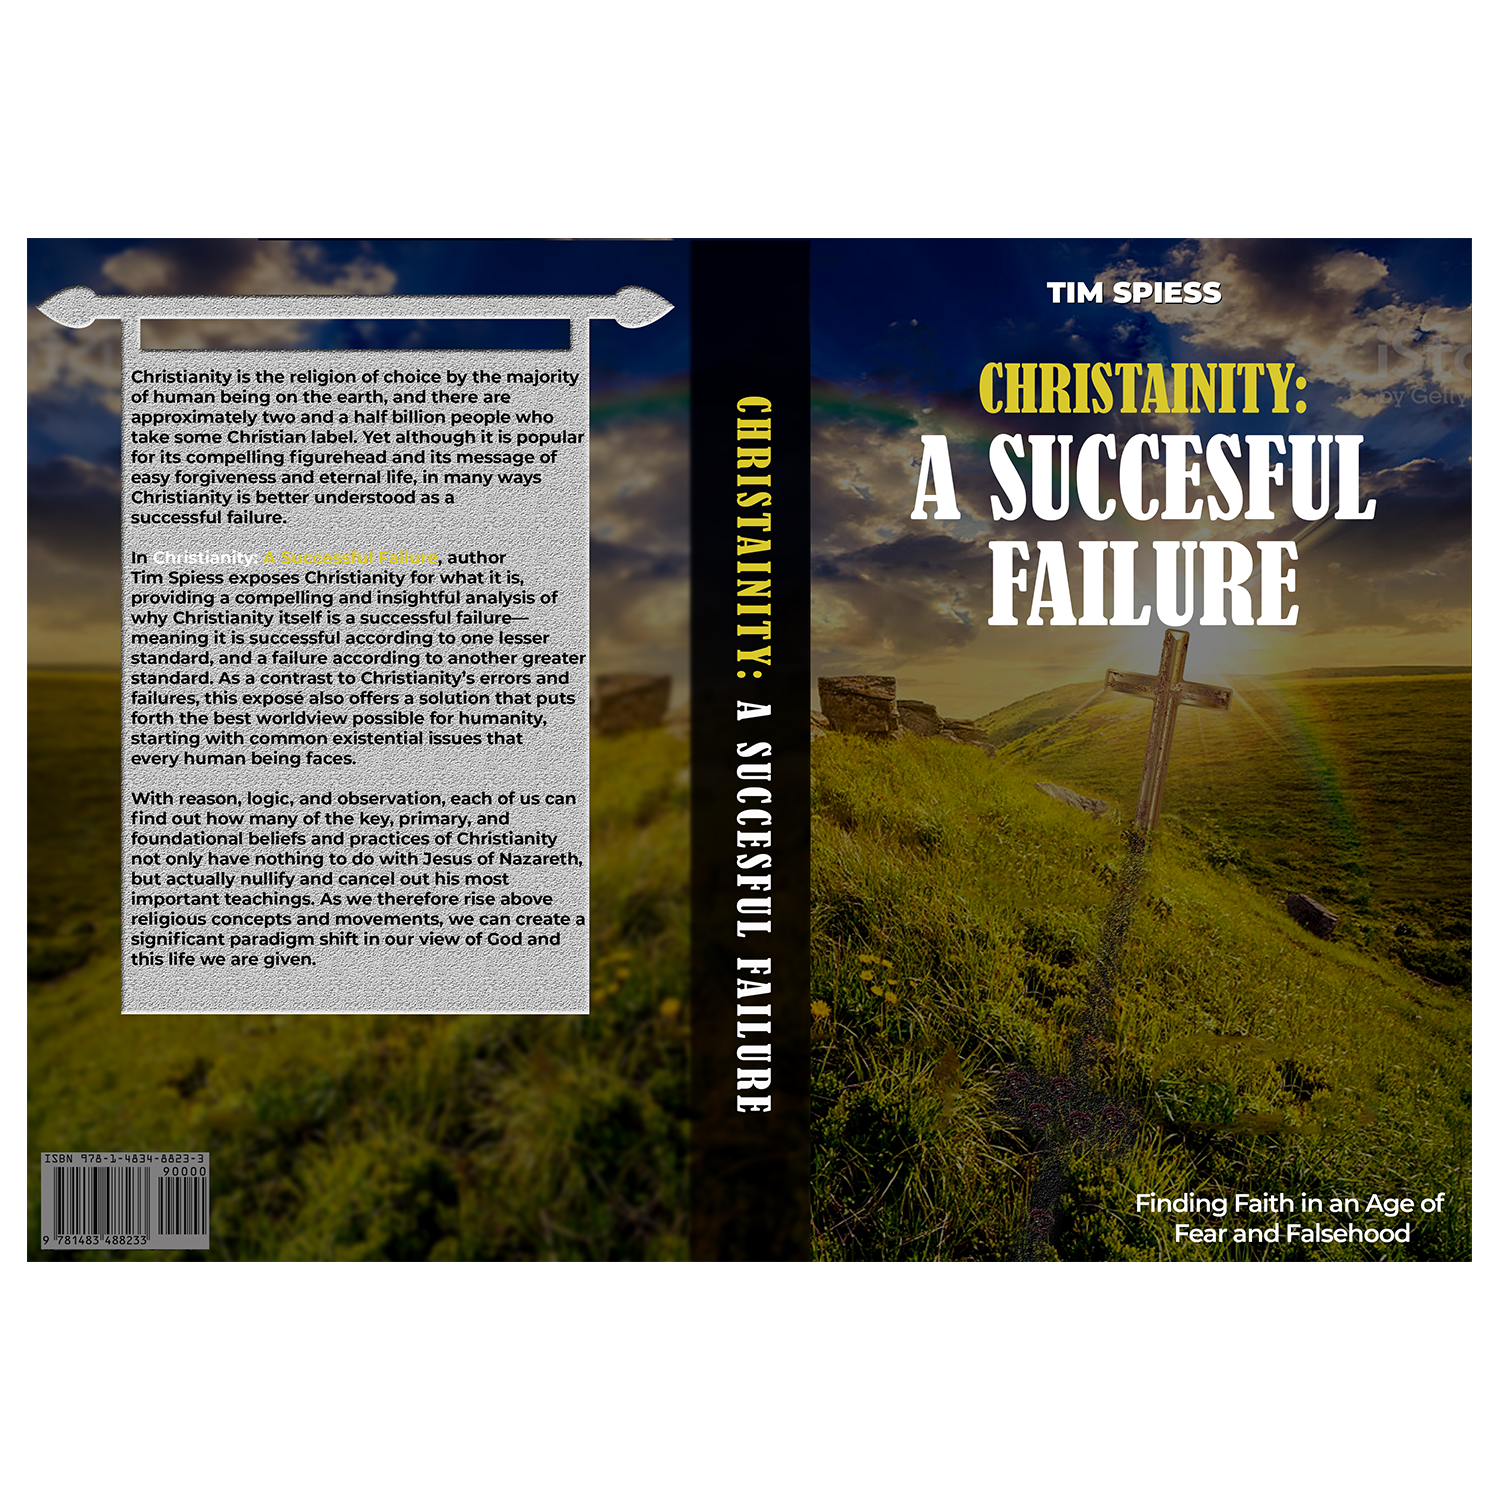 Serious Upmarket Religious Book Cover Design For A Company By Veebc Design 19284383